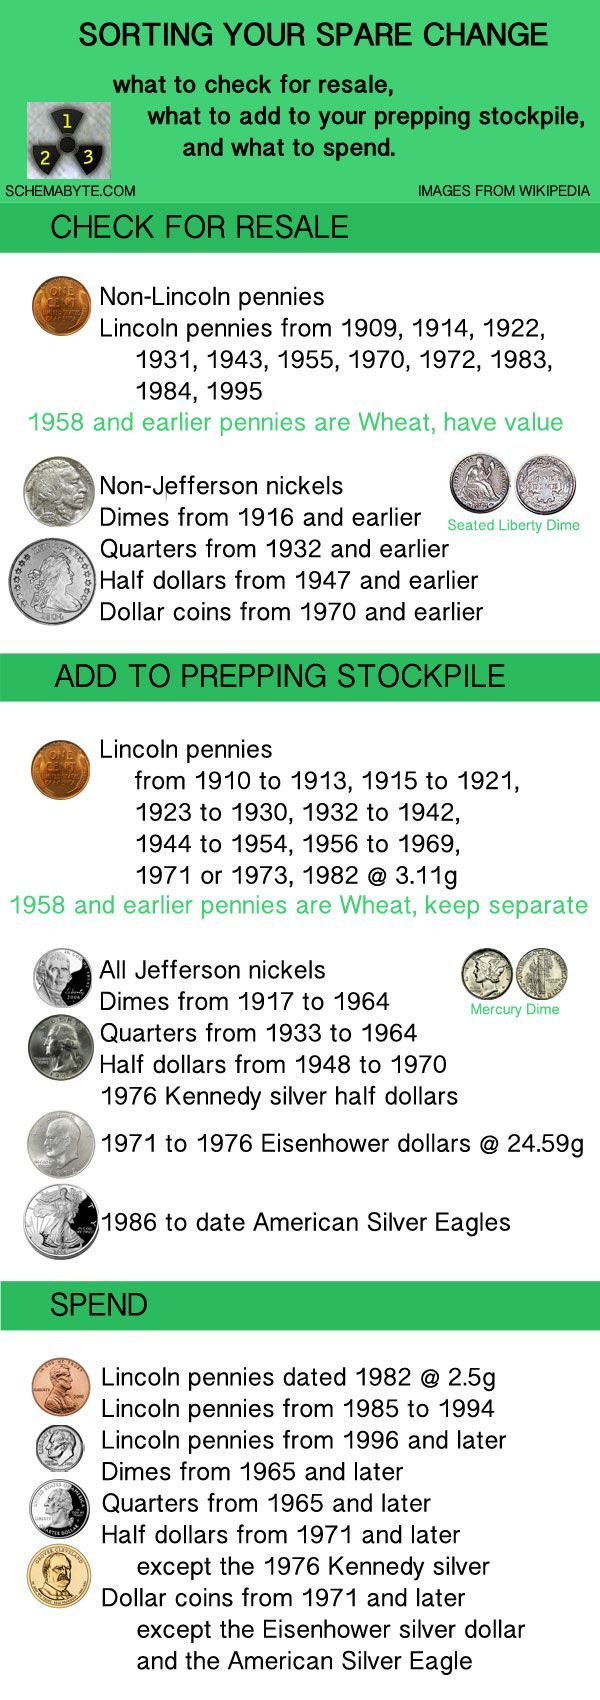 Handling your change. #preppers #preppertalk http://schemabyte.com/a-time-for-change-spending-stockpiling-and-selling-coins/